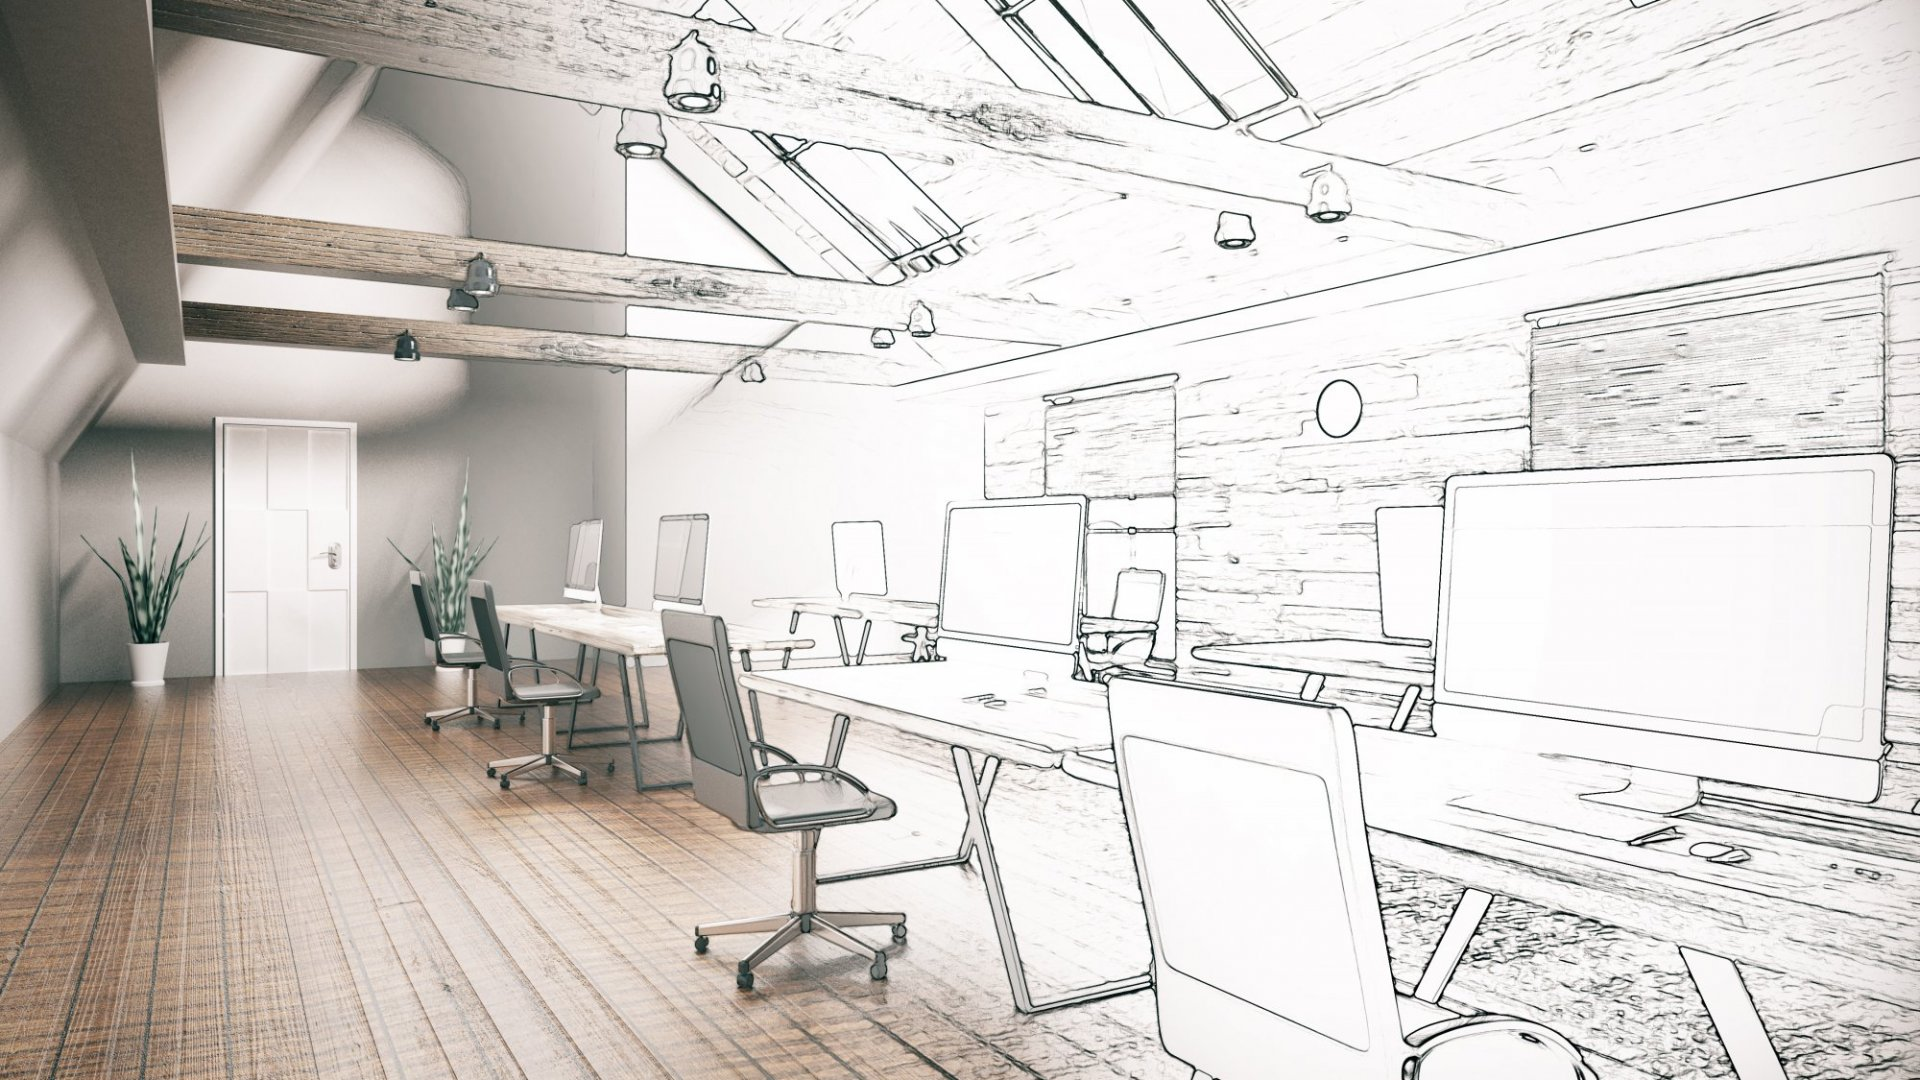 5 Ways to Improve Company Culture Through Office Design